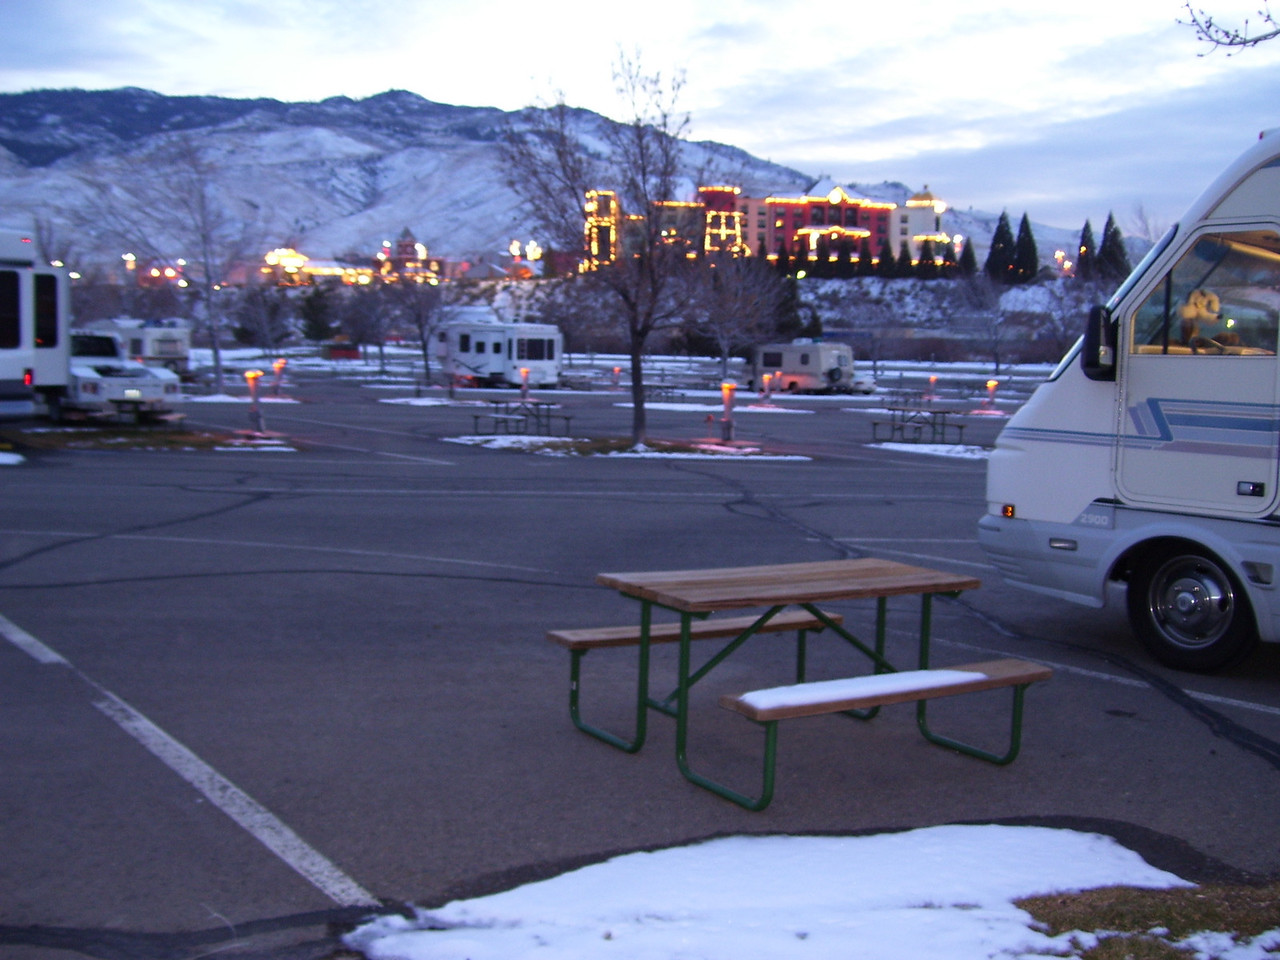 """Camping at """"Boomtown"""" Casino RV Park in Reno, Nevada. 22° degress outside & snow in the forecast."""